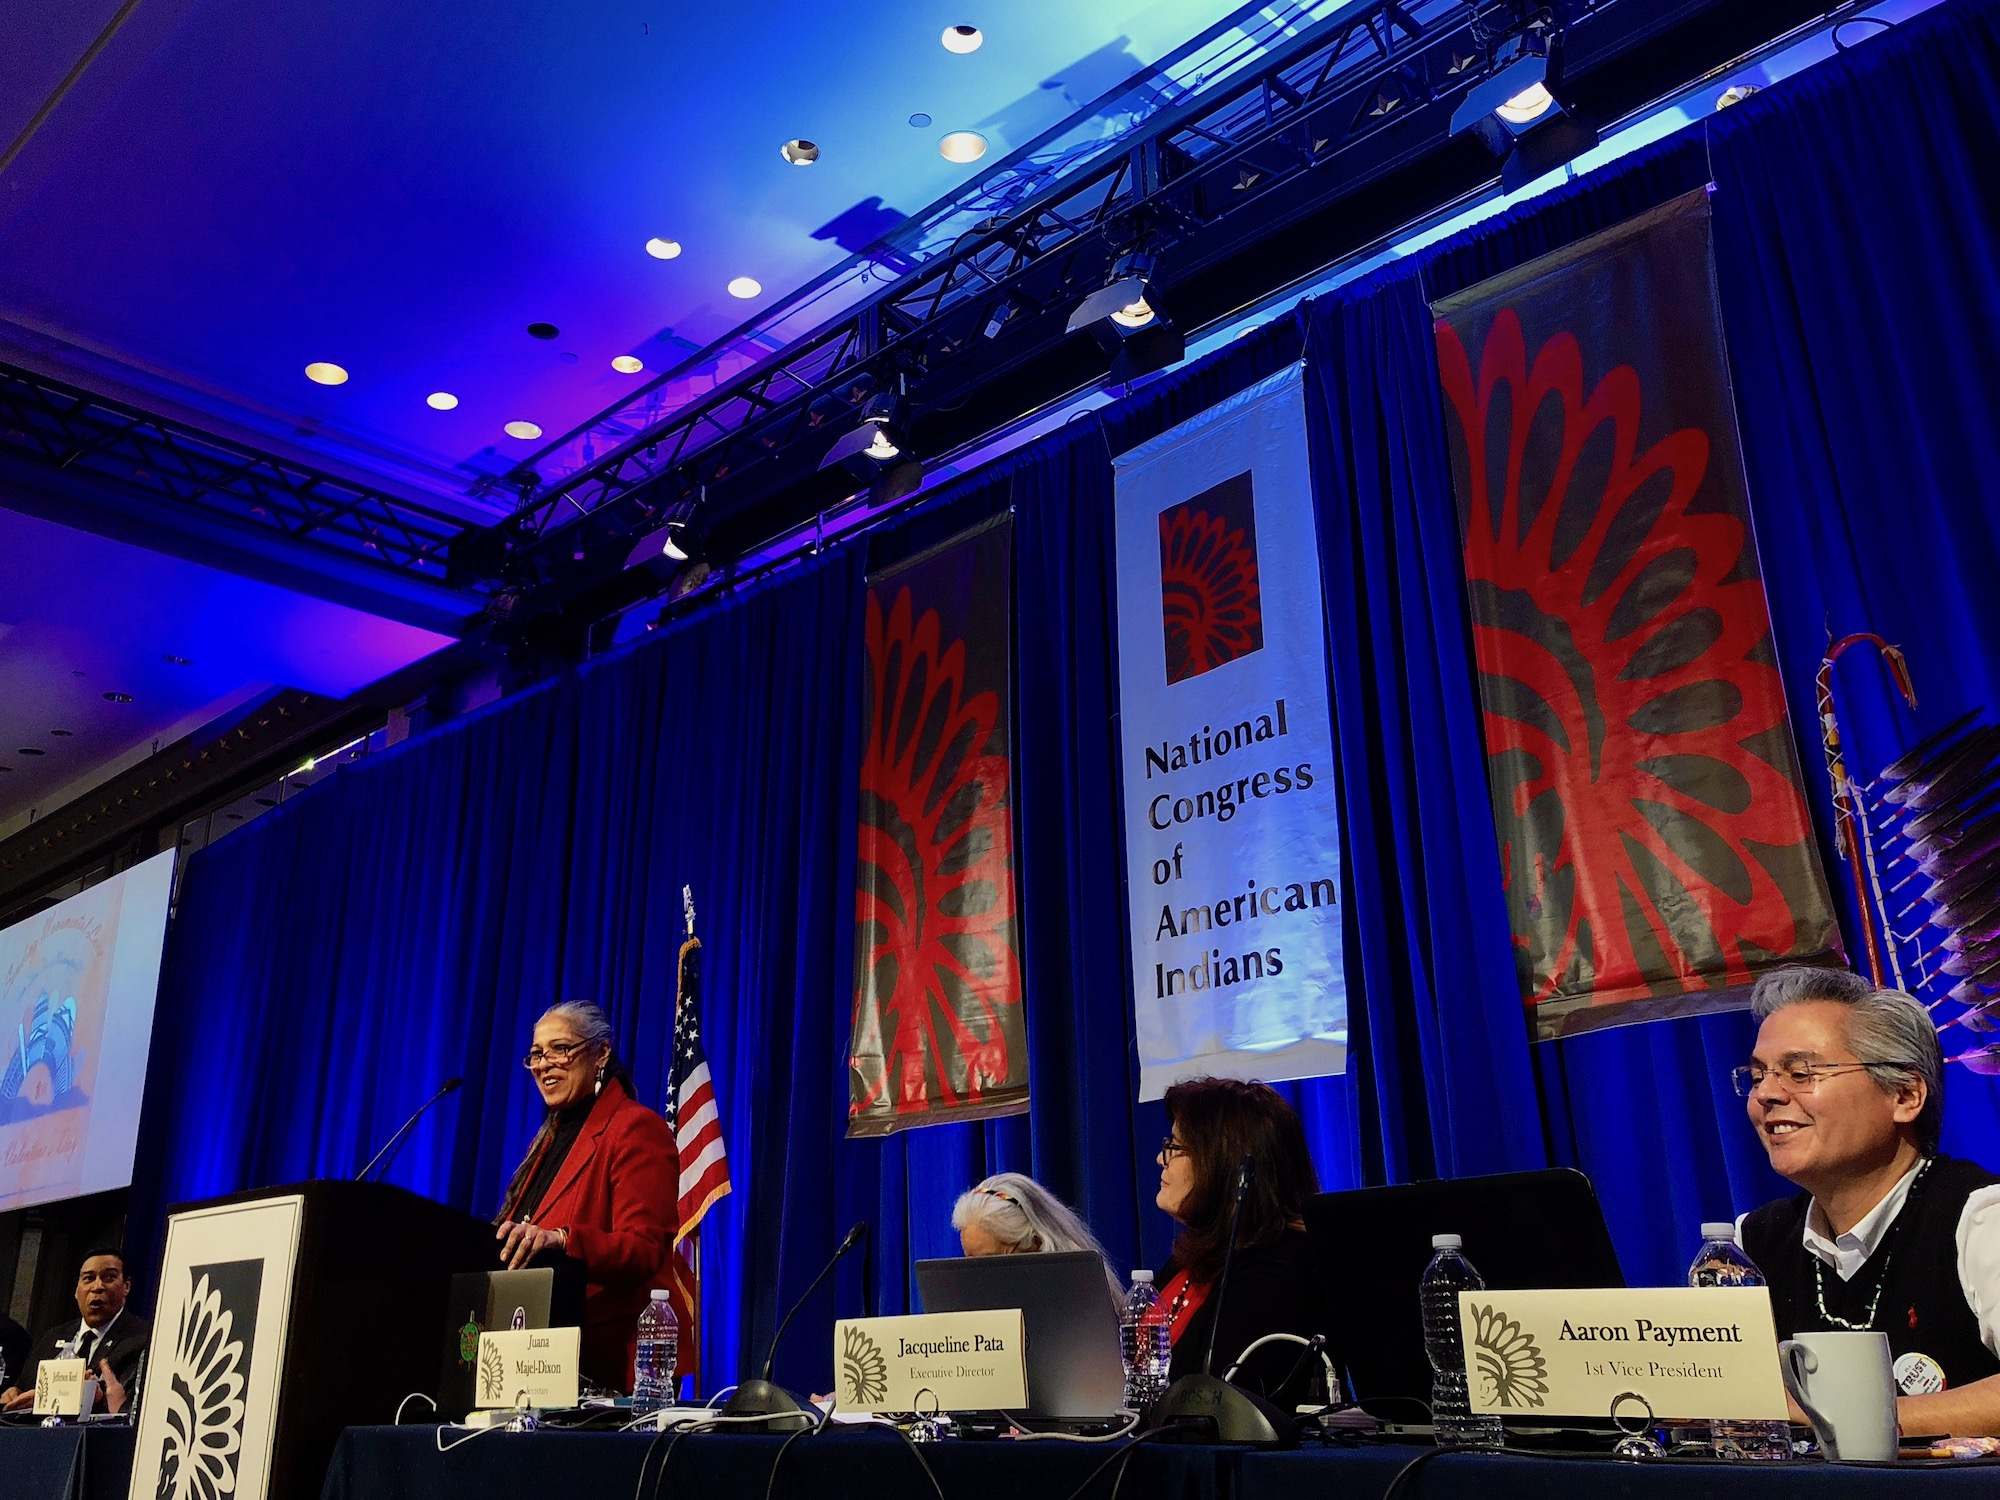 National Congress of American Indians wraps up big winter session